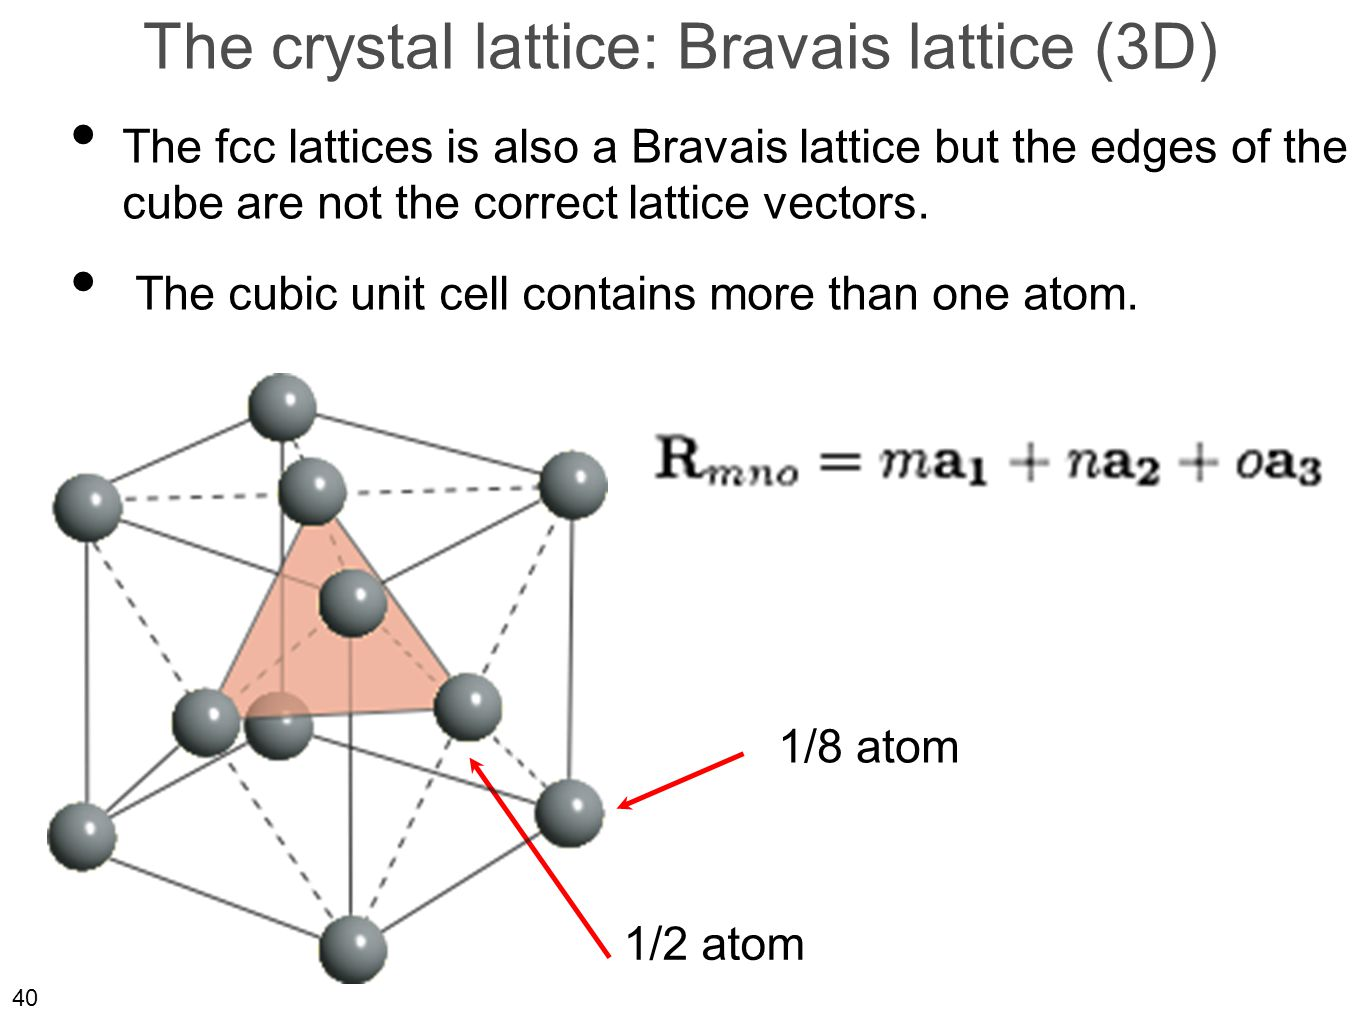 40 The crystal lattice: Bravais lattice (3D) The fcc lattices is also a Bravais lattice but the edges of the cube are not the correct lattice vectors.